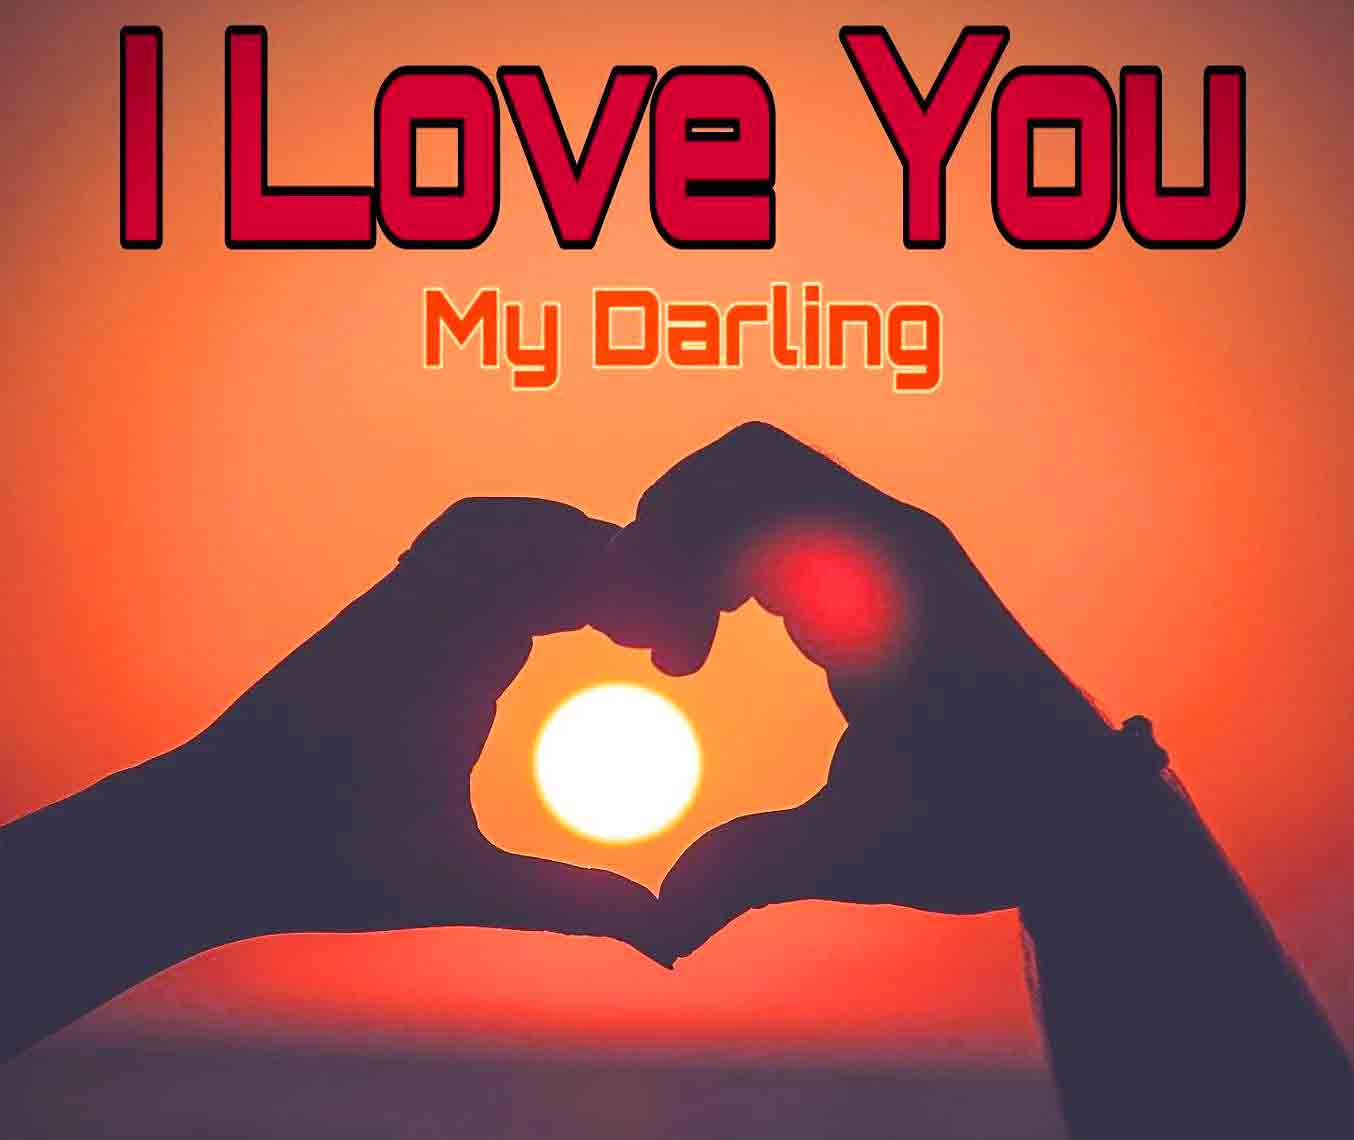 Latest I Love You Whatsapp Dp Images pictures free hd